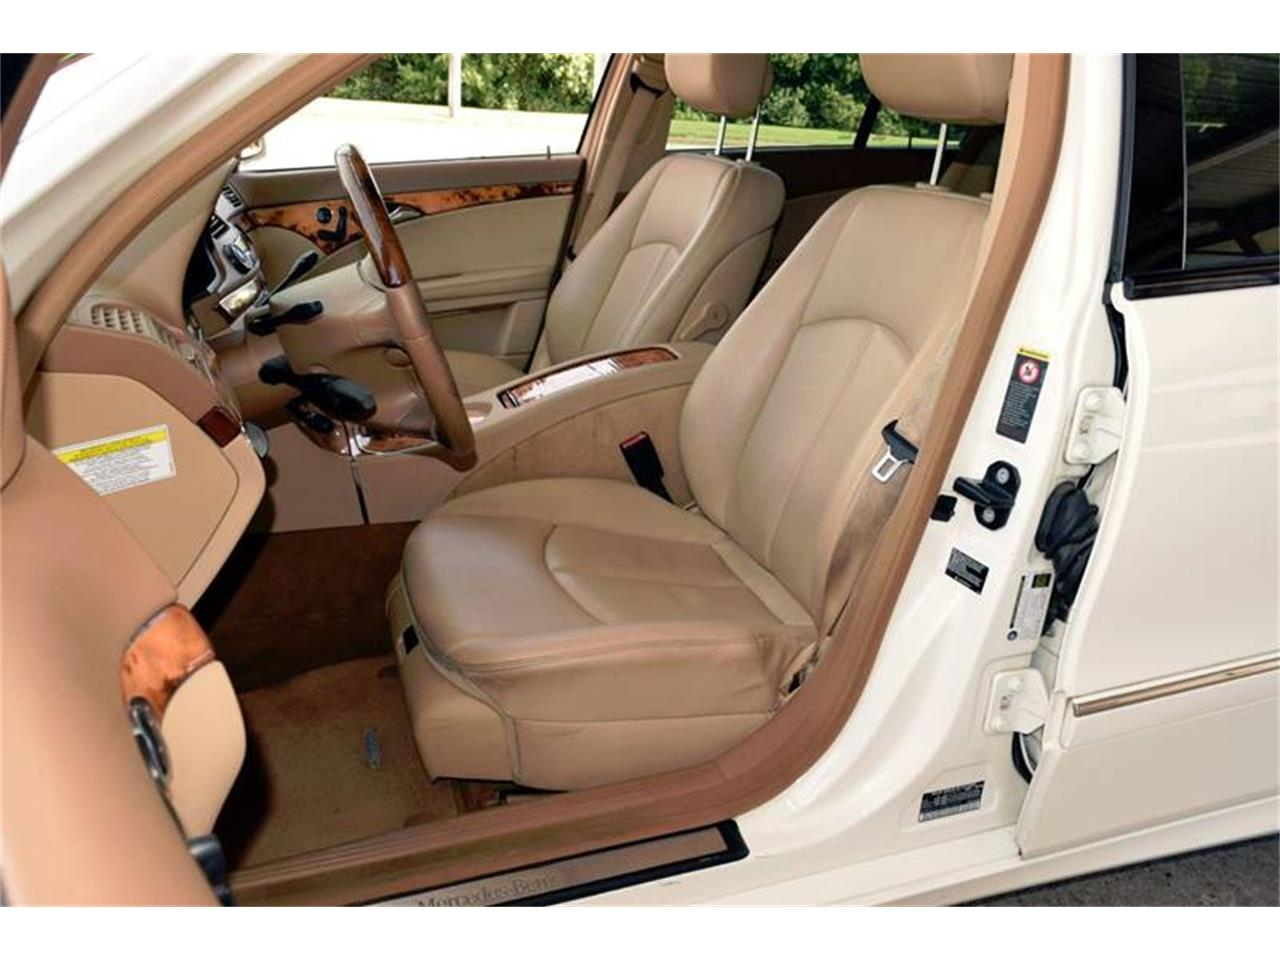 2009 Mercedes-Benz E-Class for sale in Fort Worth, TX – photo 10